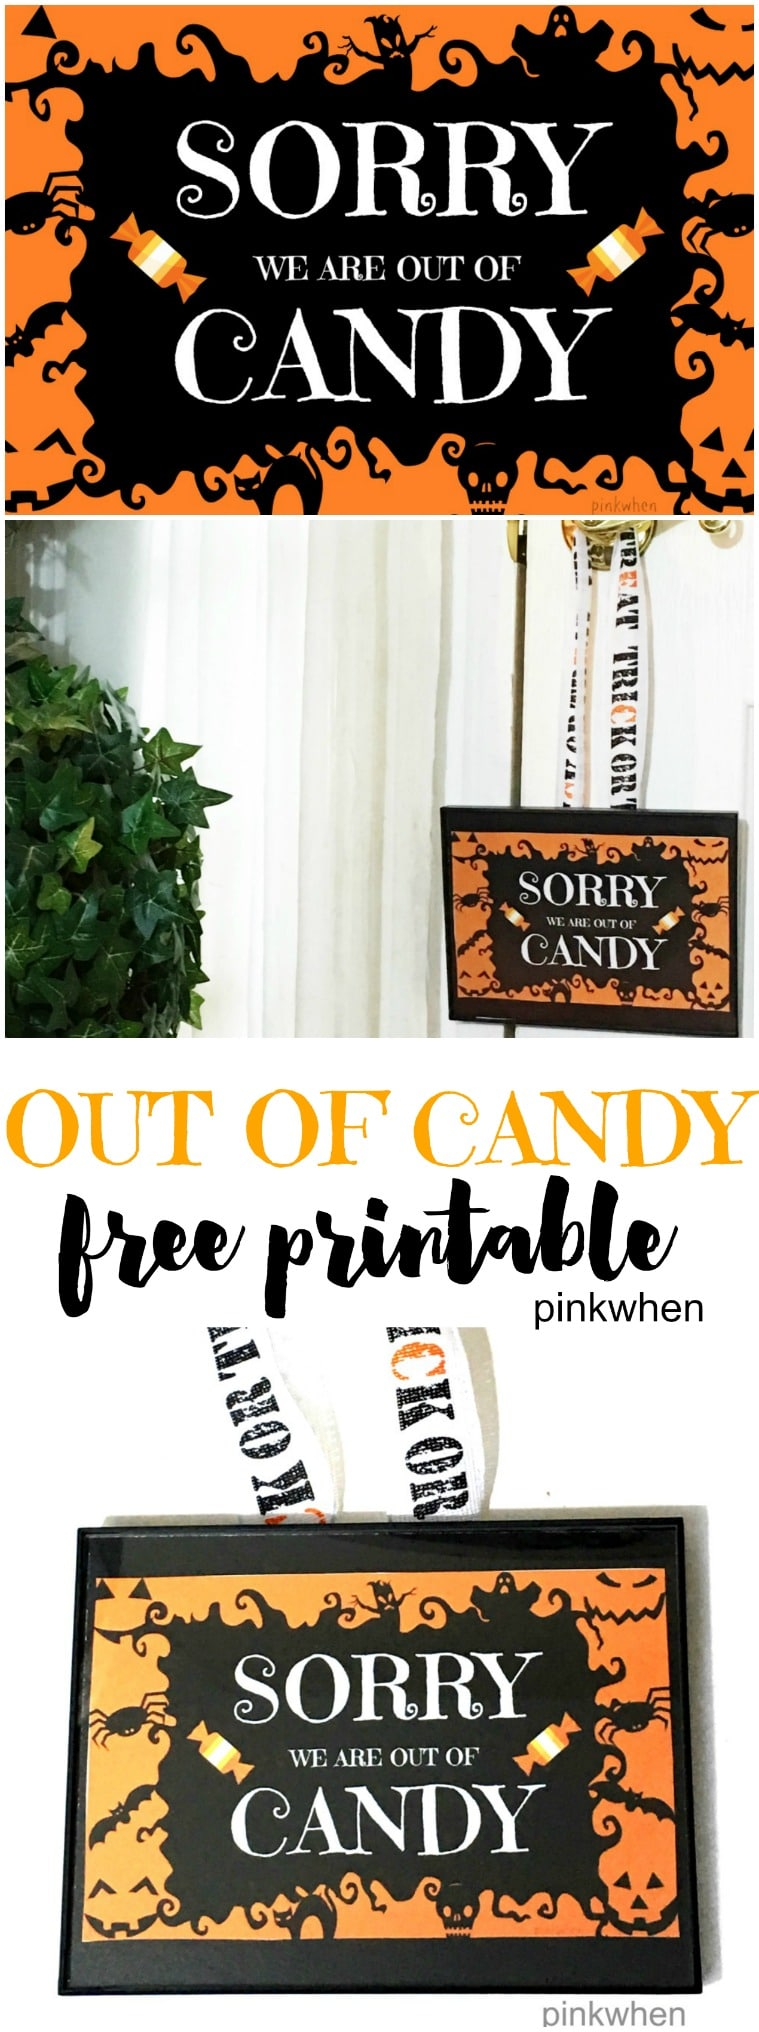 Out of Candy Halloween Printable via PinkWhen